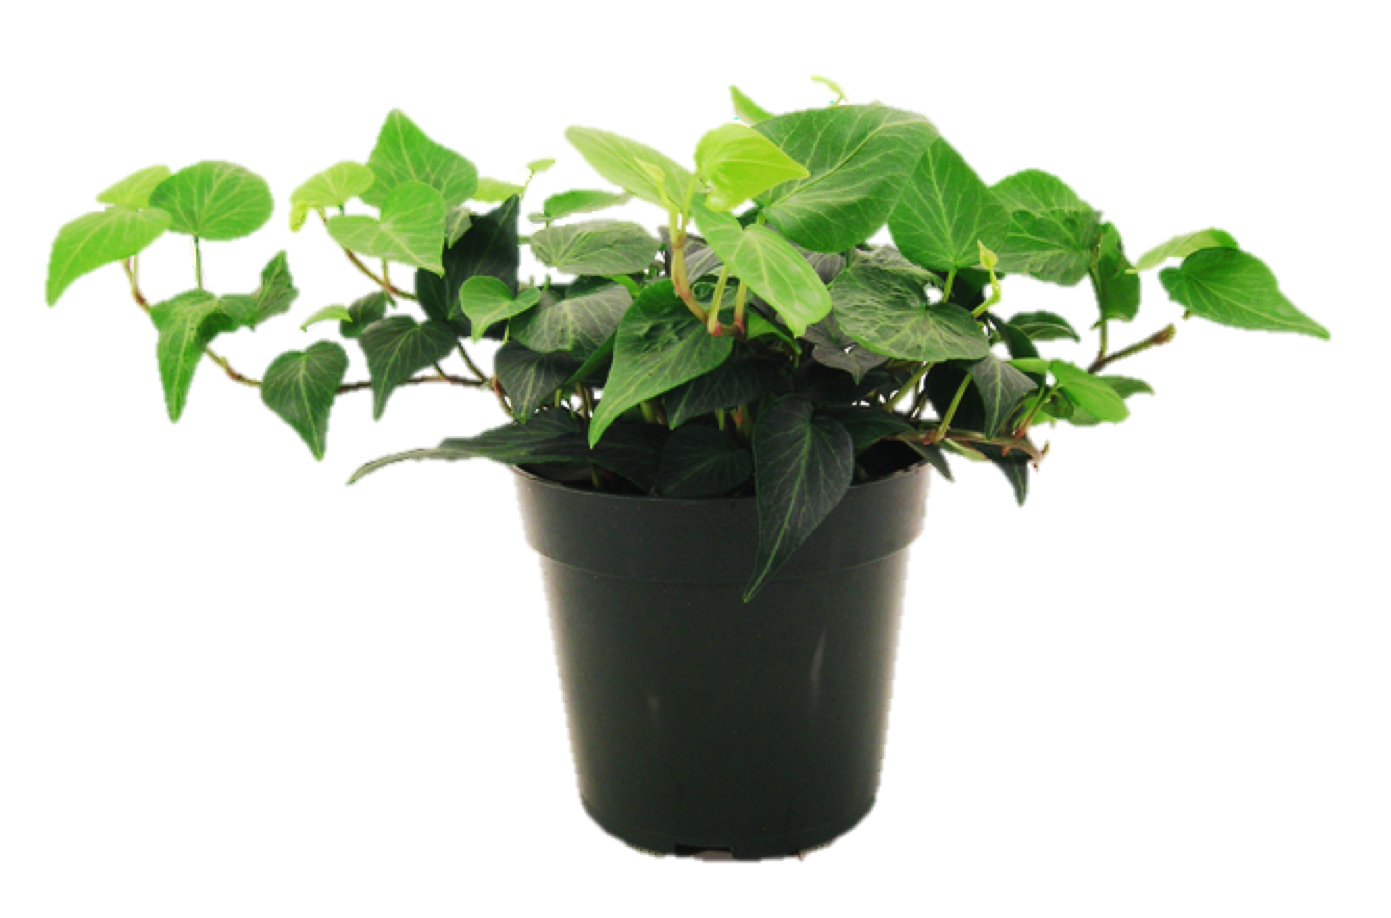 House plant png. Image houseplant warehouse artifact